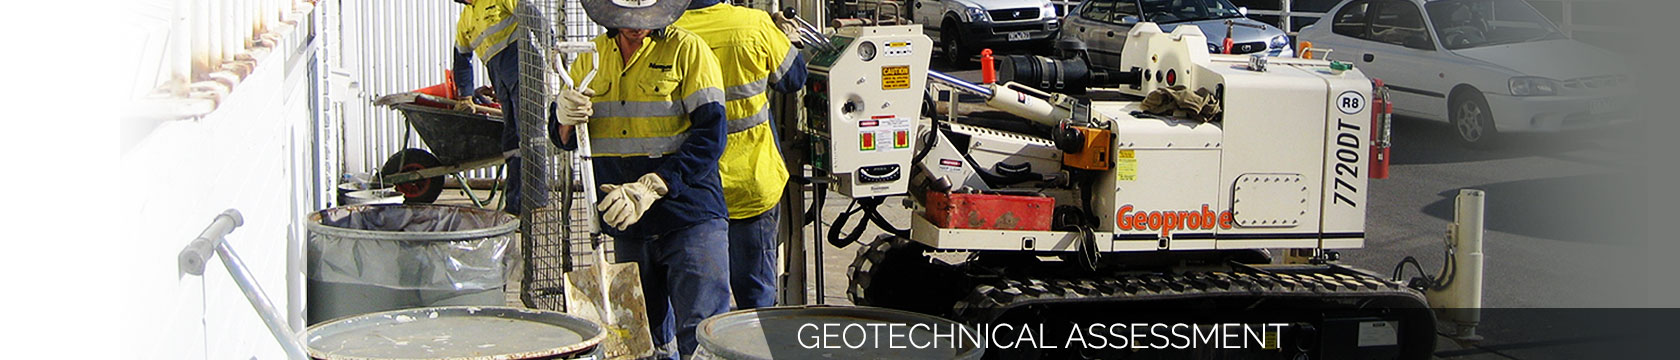 Geotechnical Assessments